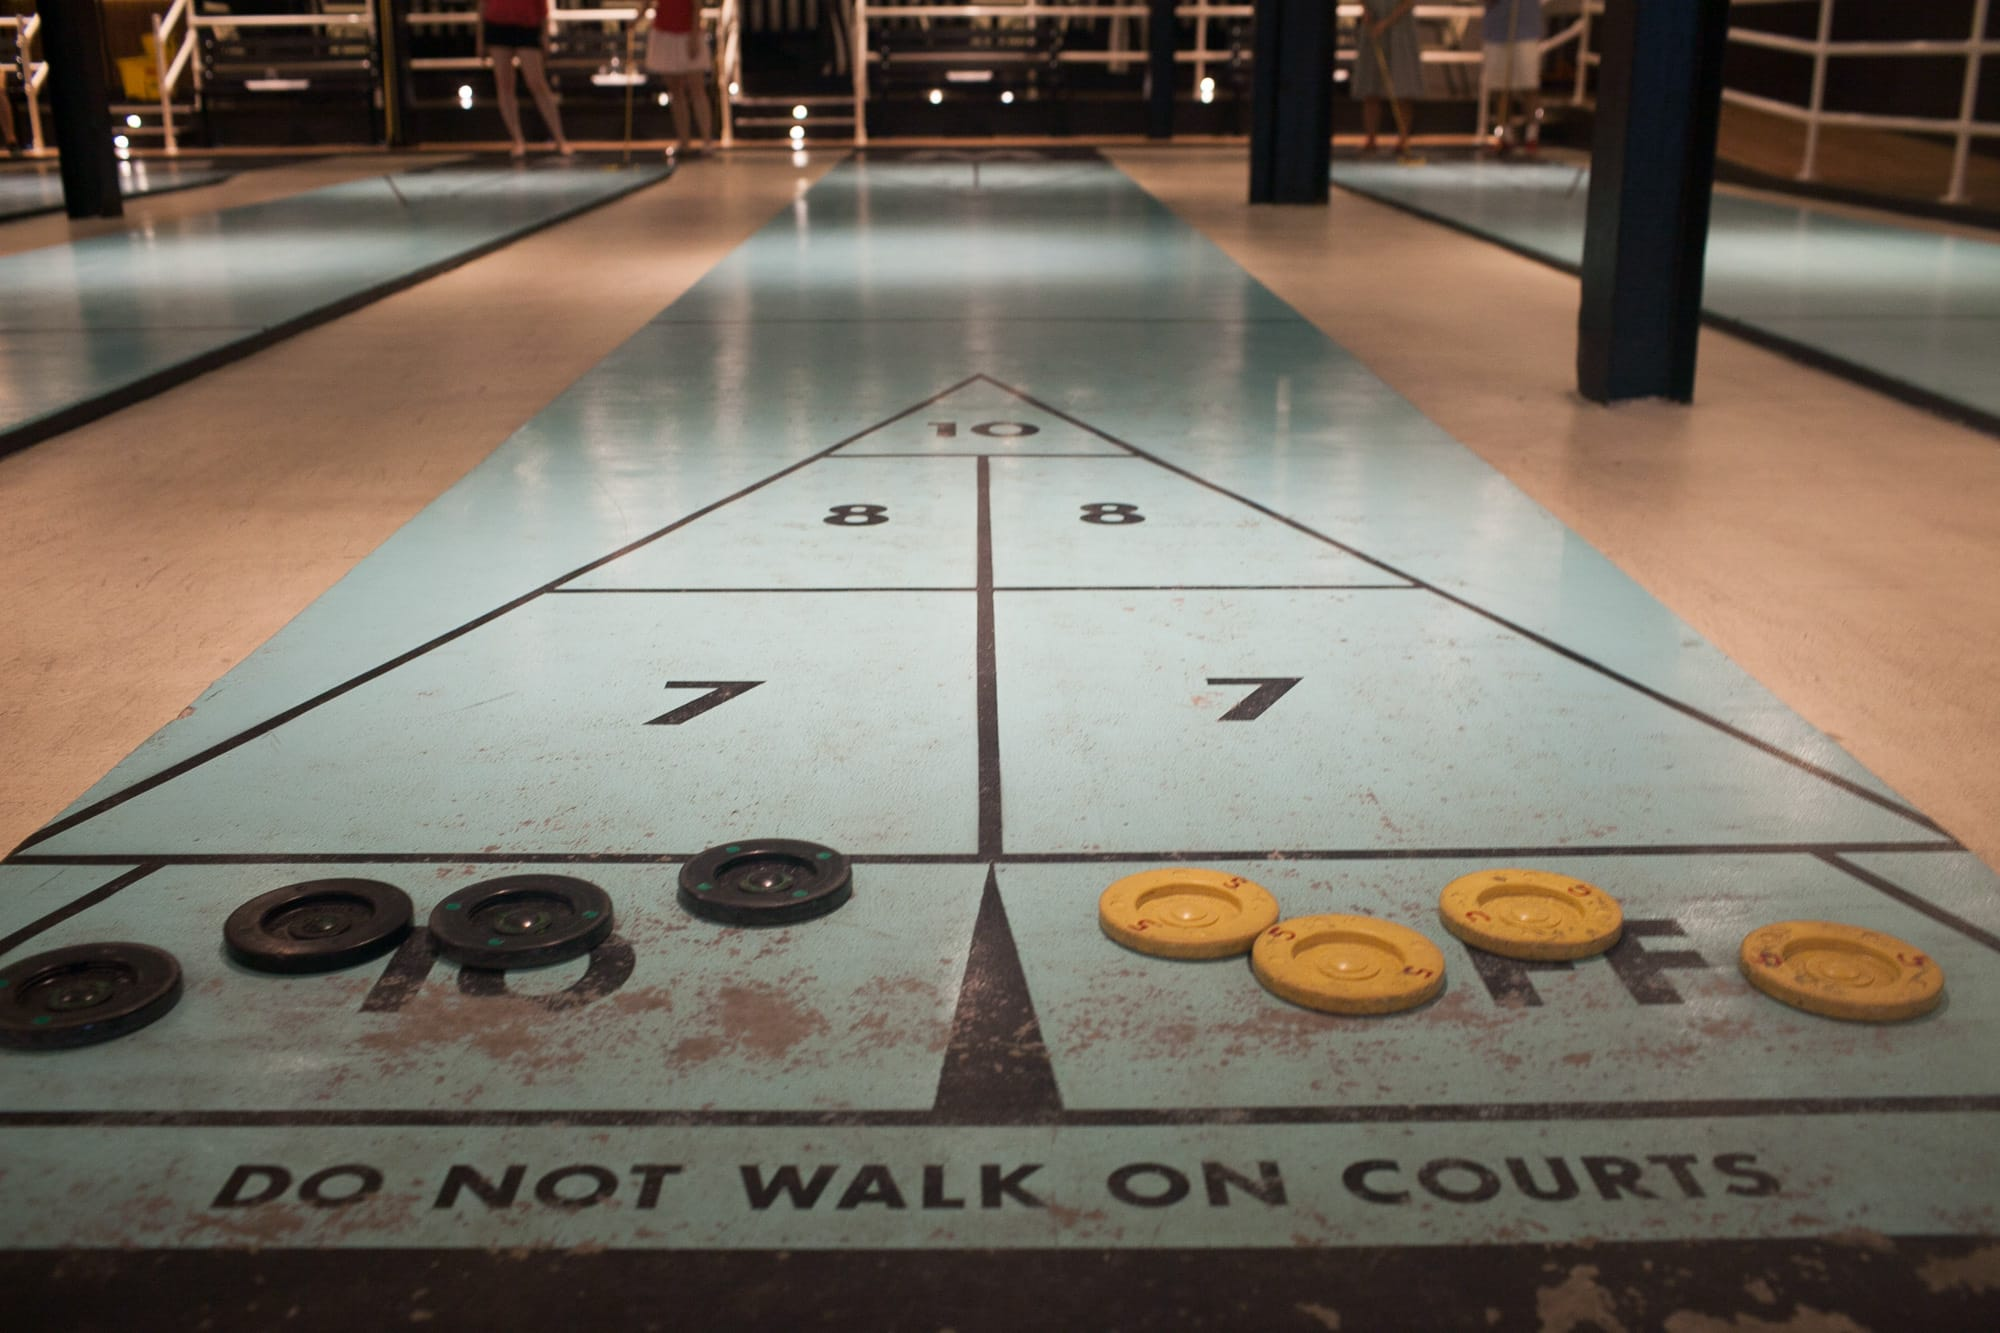 Royal Palms Shuffleboard Club in Brooklyn, New York